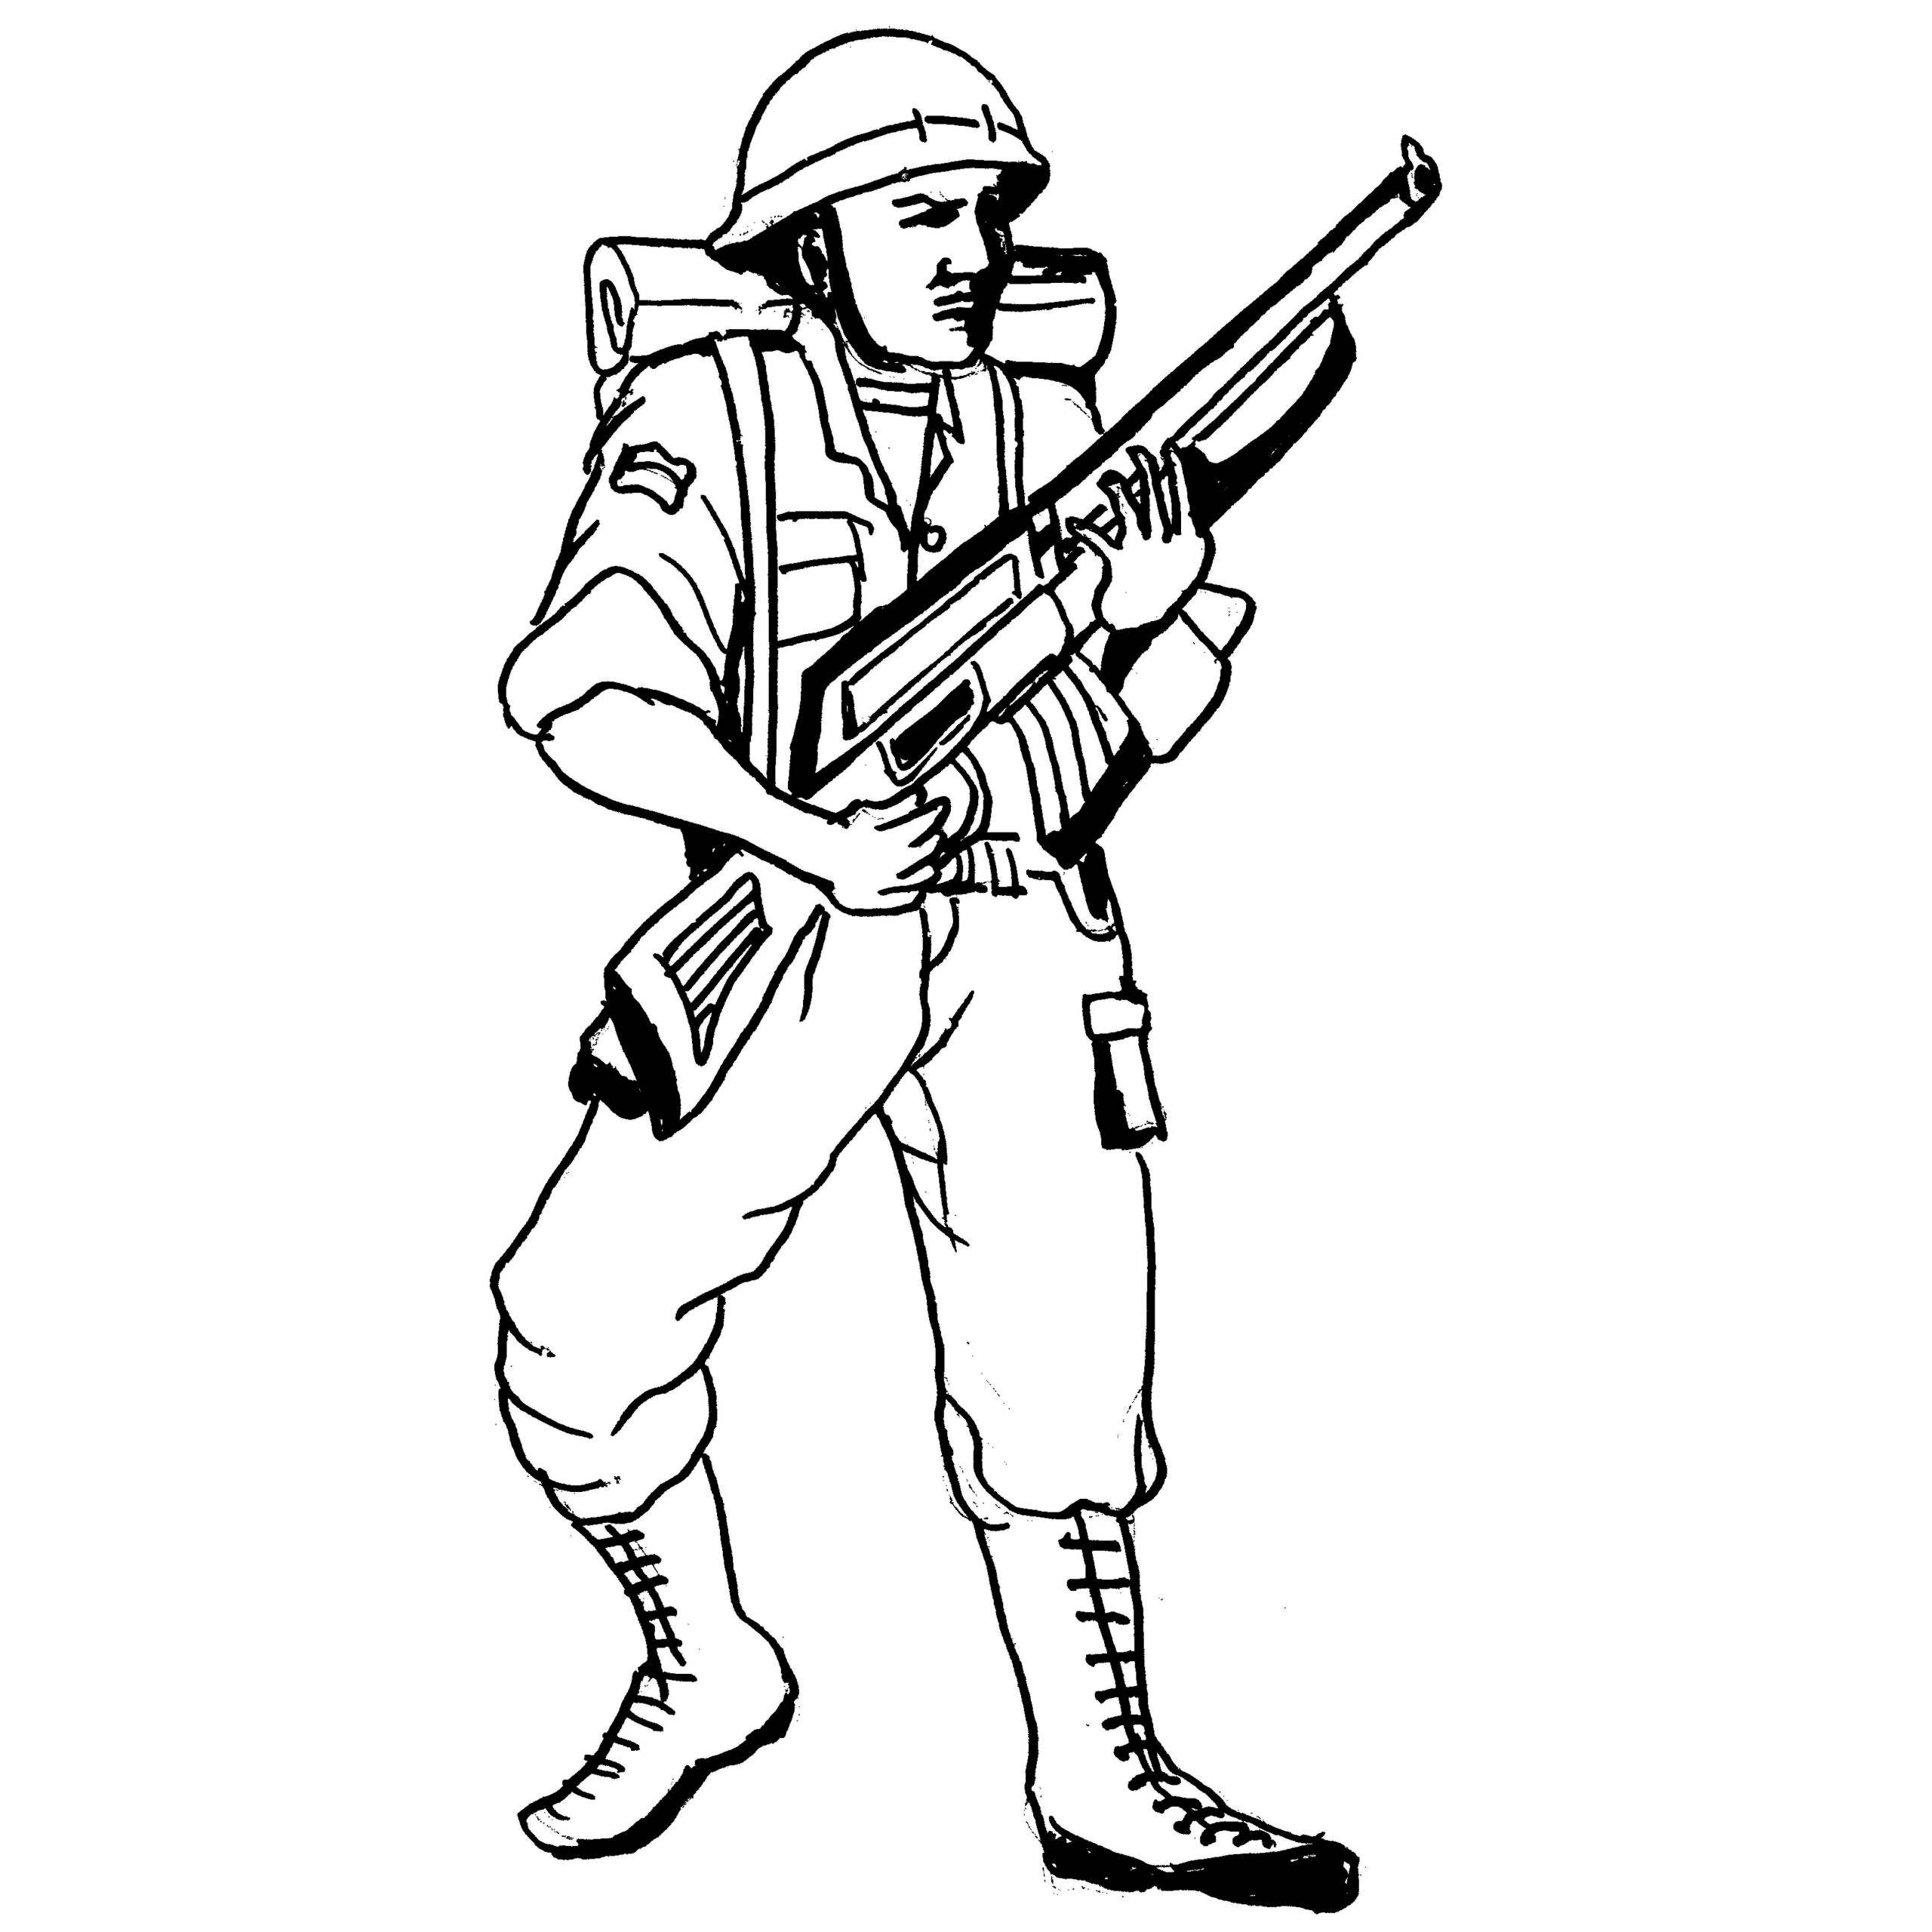 thompson machine gun coloring pages - photo#29